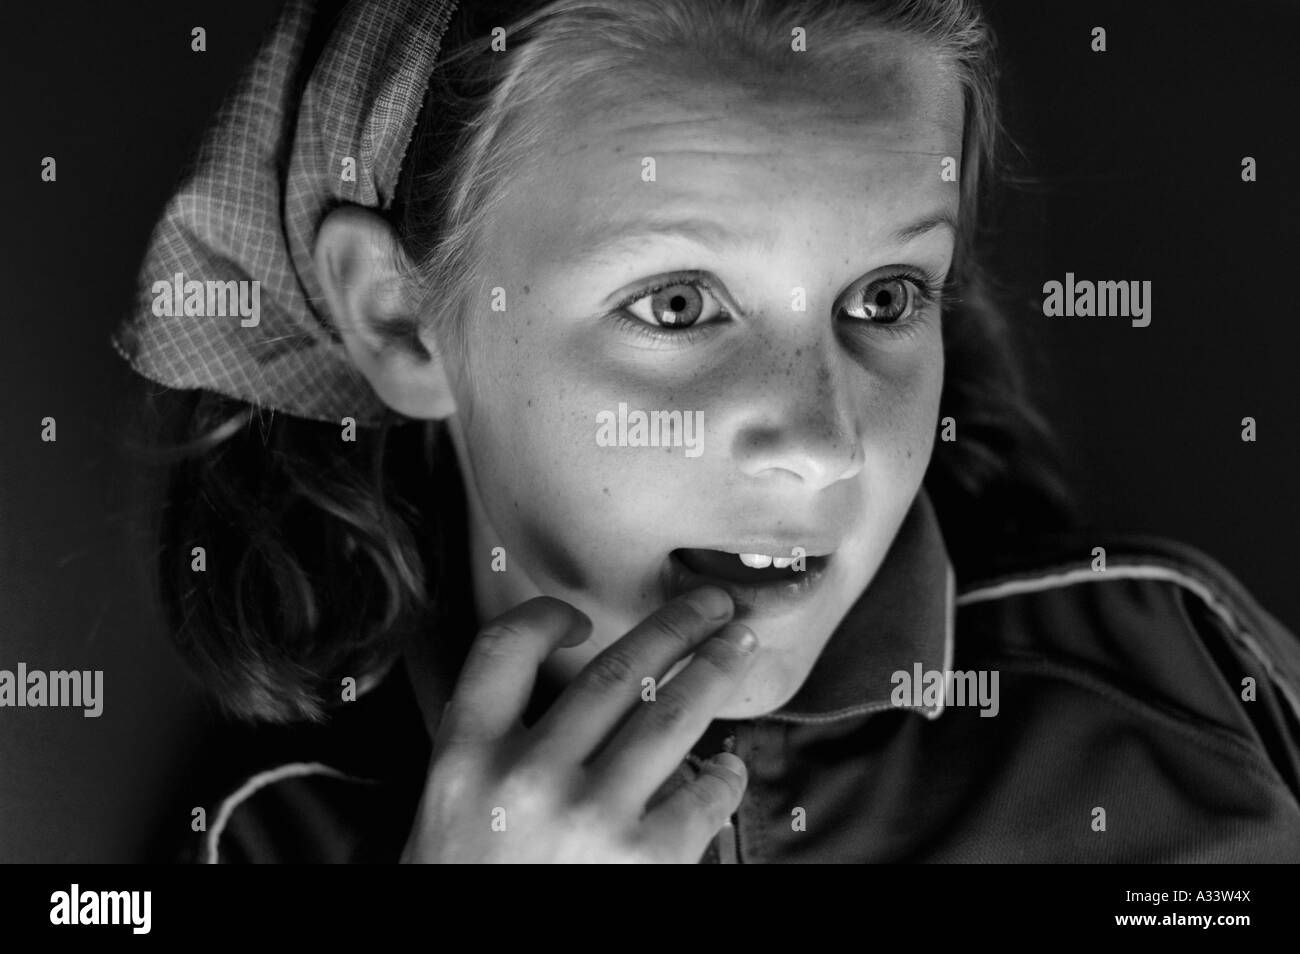 portrait of young girl gripped by a  television programme - Stock Image